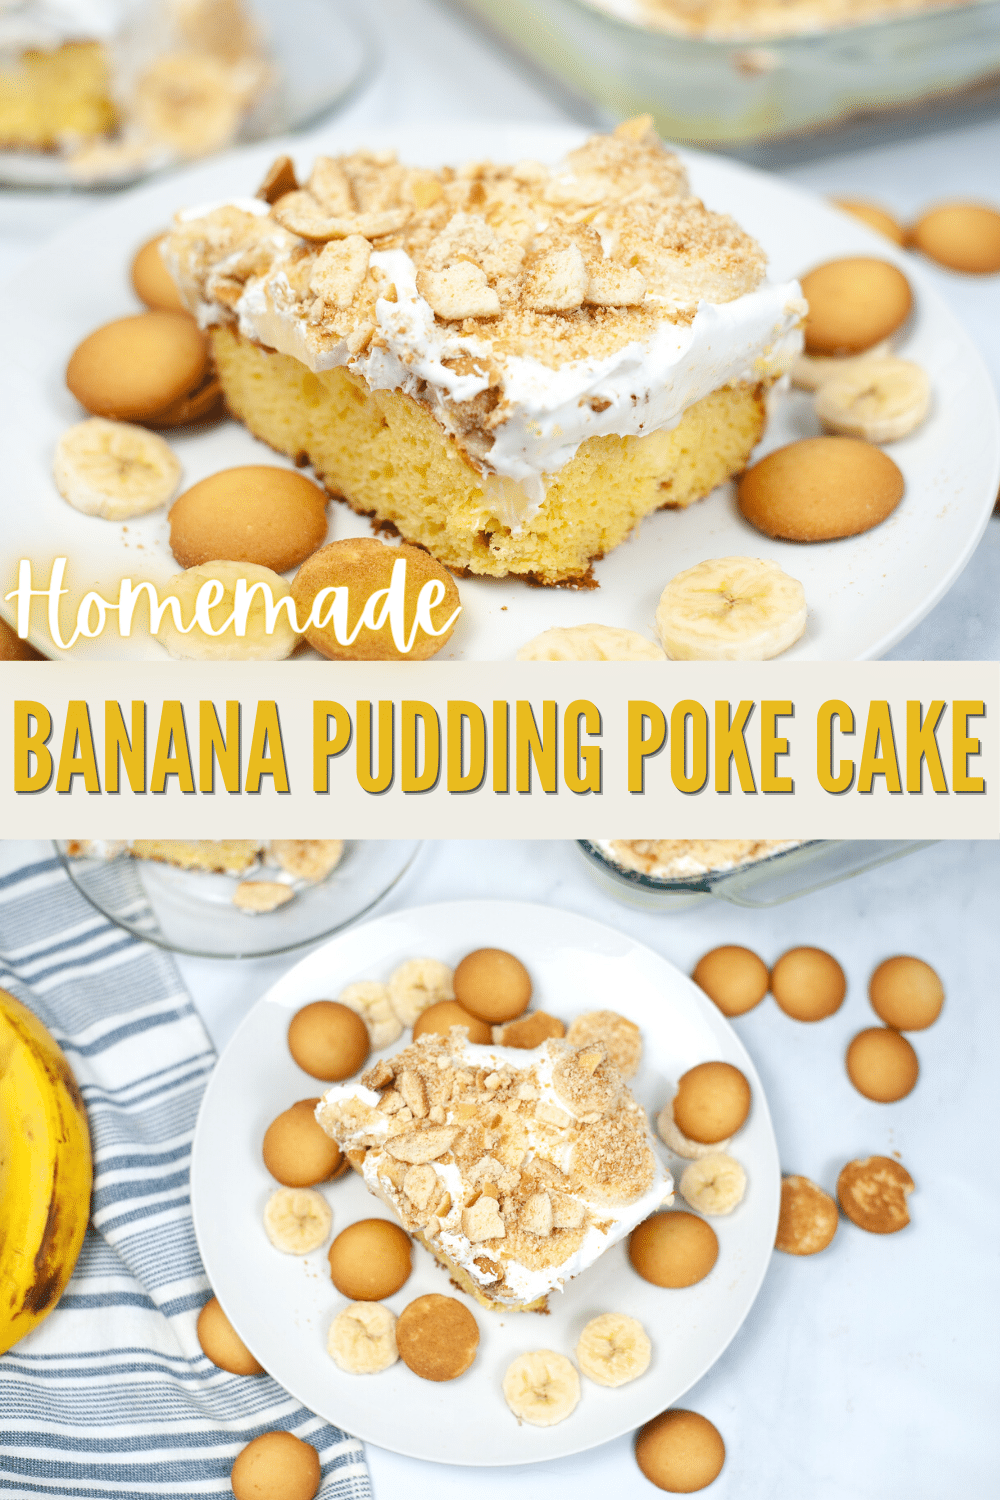 This banana pudding poke cake is a fun version of your favorite traditional banana pudding. All the flavors of banana pudding are here! #bananapudding #pokecake #bananacake #cake #dessert via @wondermomwannab